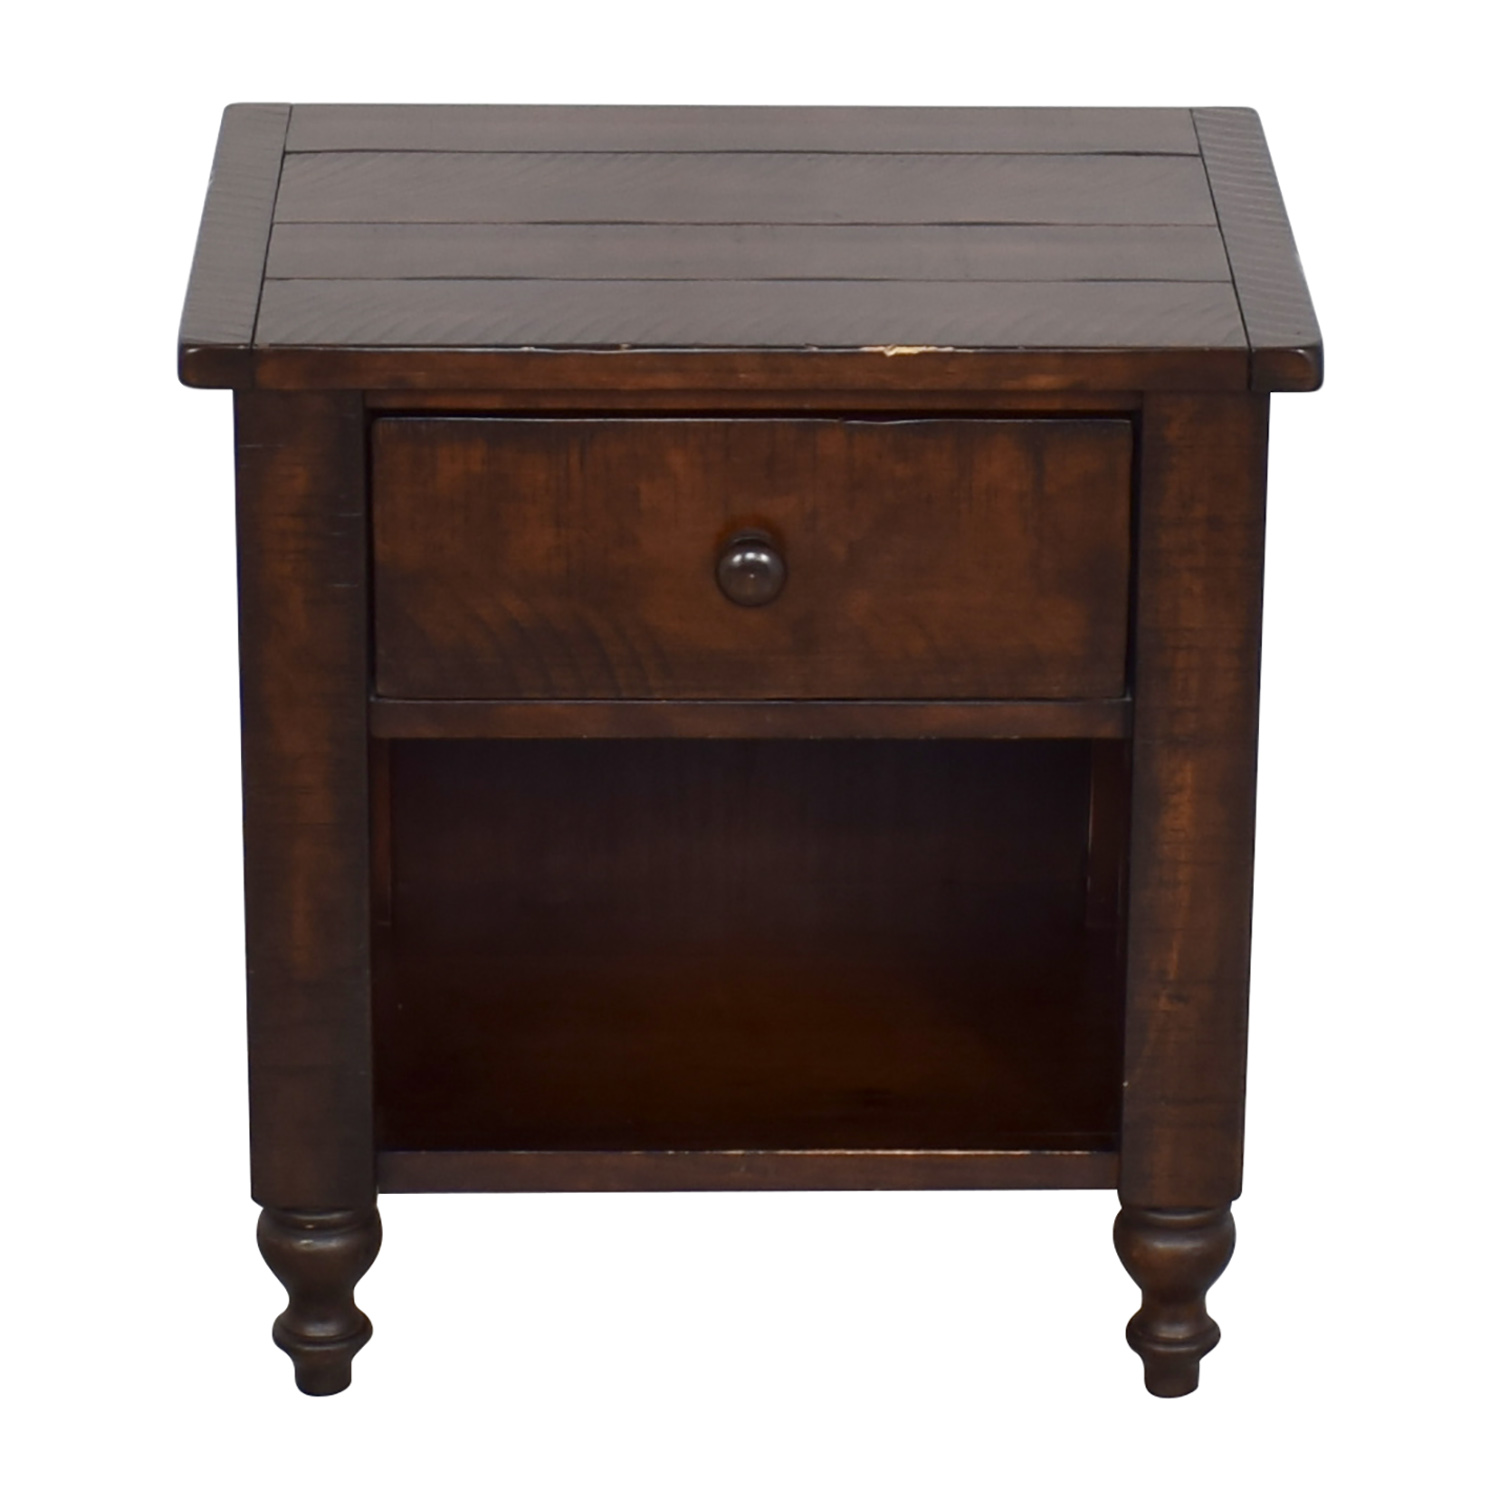 Pottery Barn Pottery Barn Ashby Nightstand discount